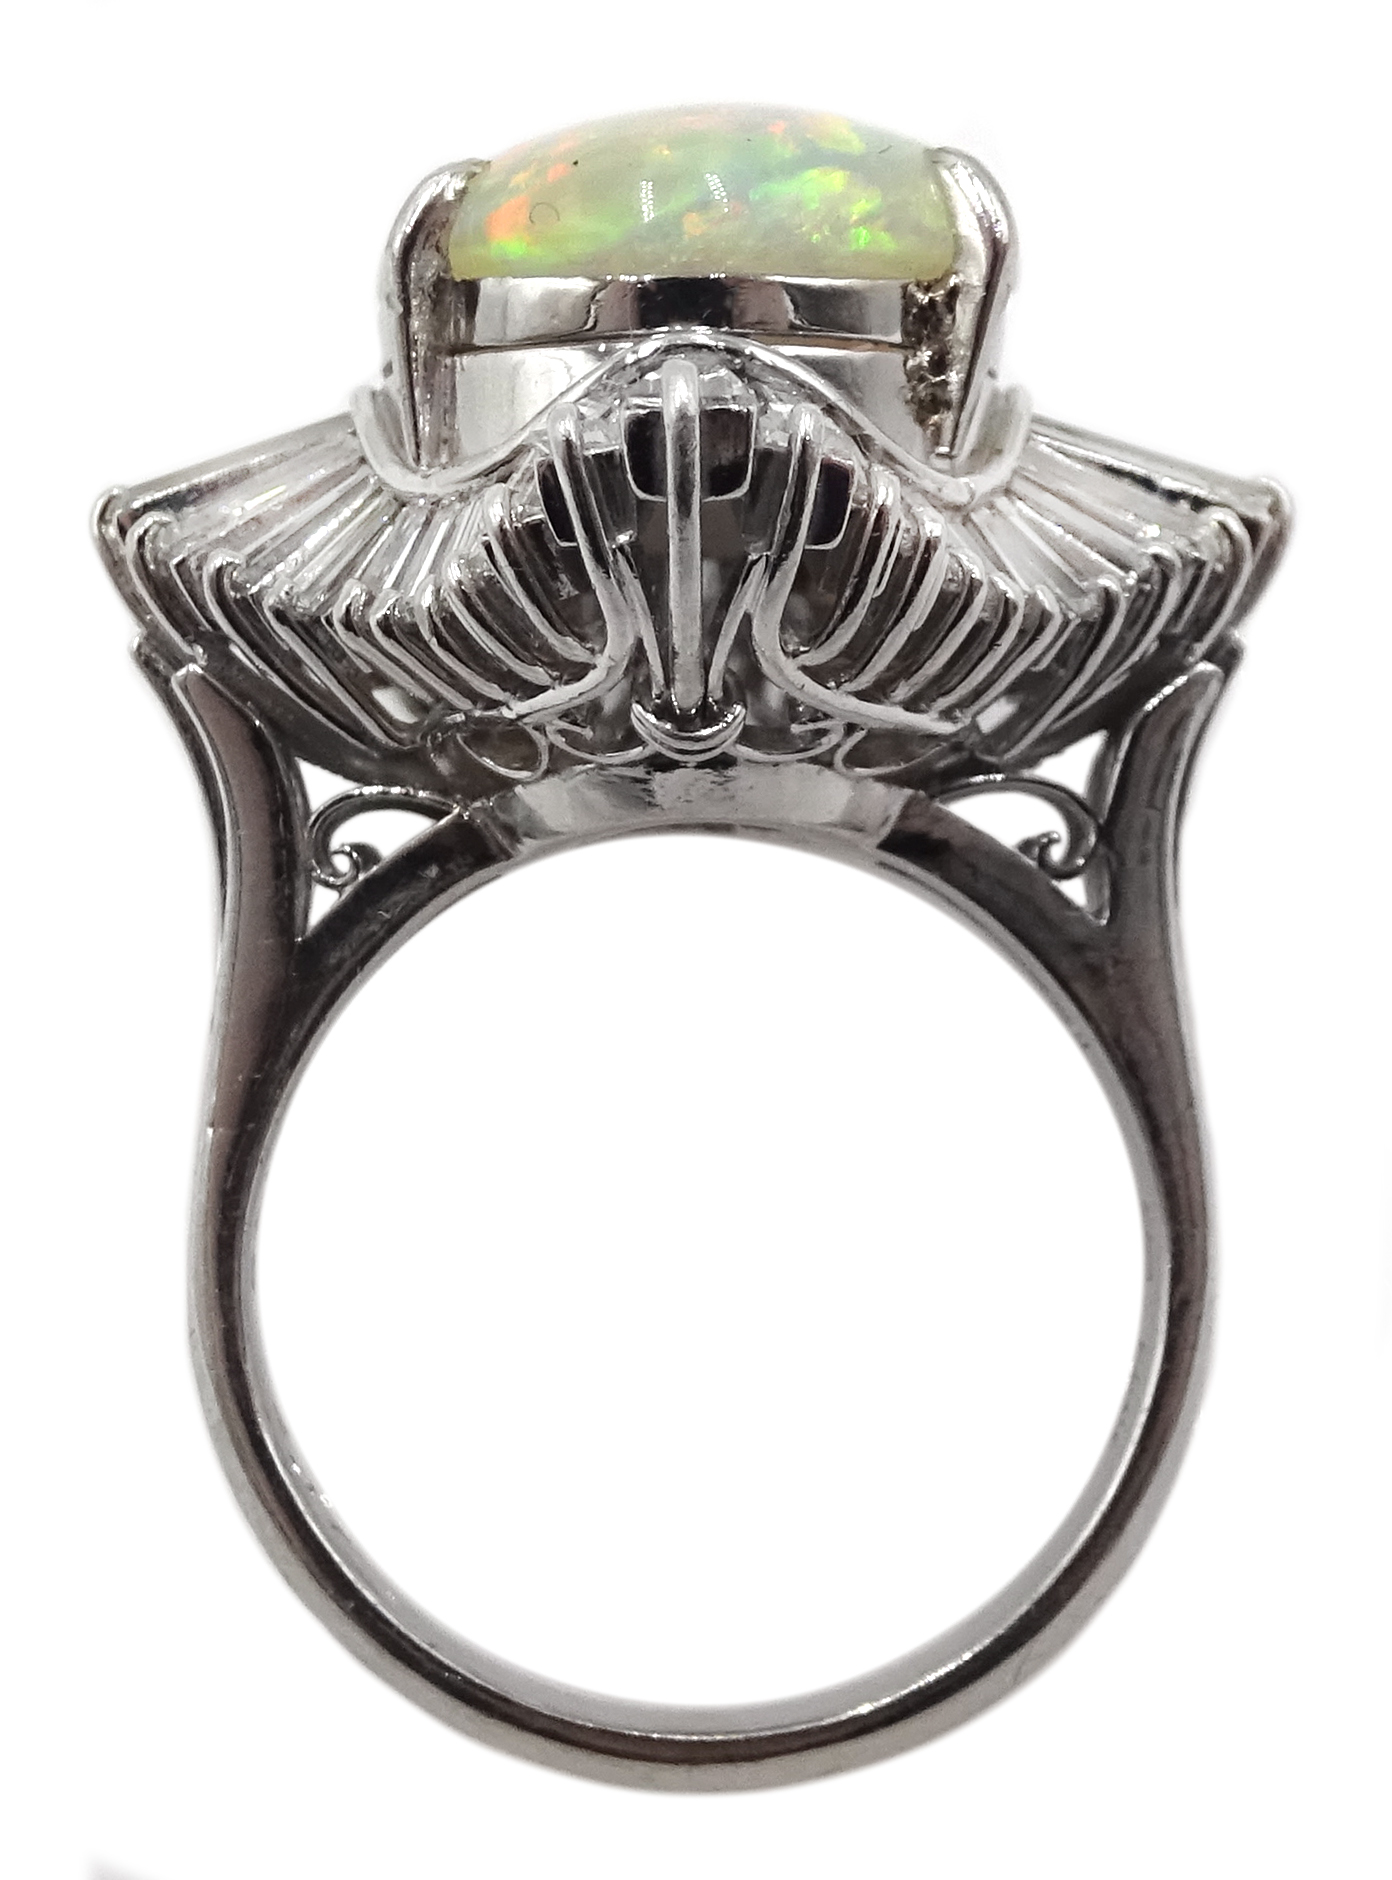 Platinum oval cabochon opal and baguette diamond ring - Image 4 of 5